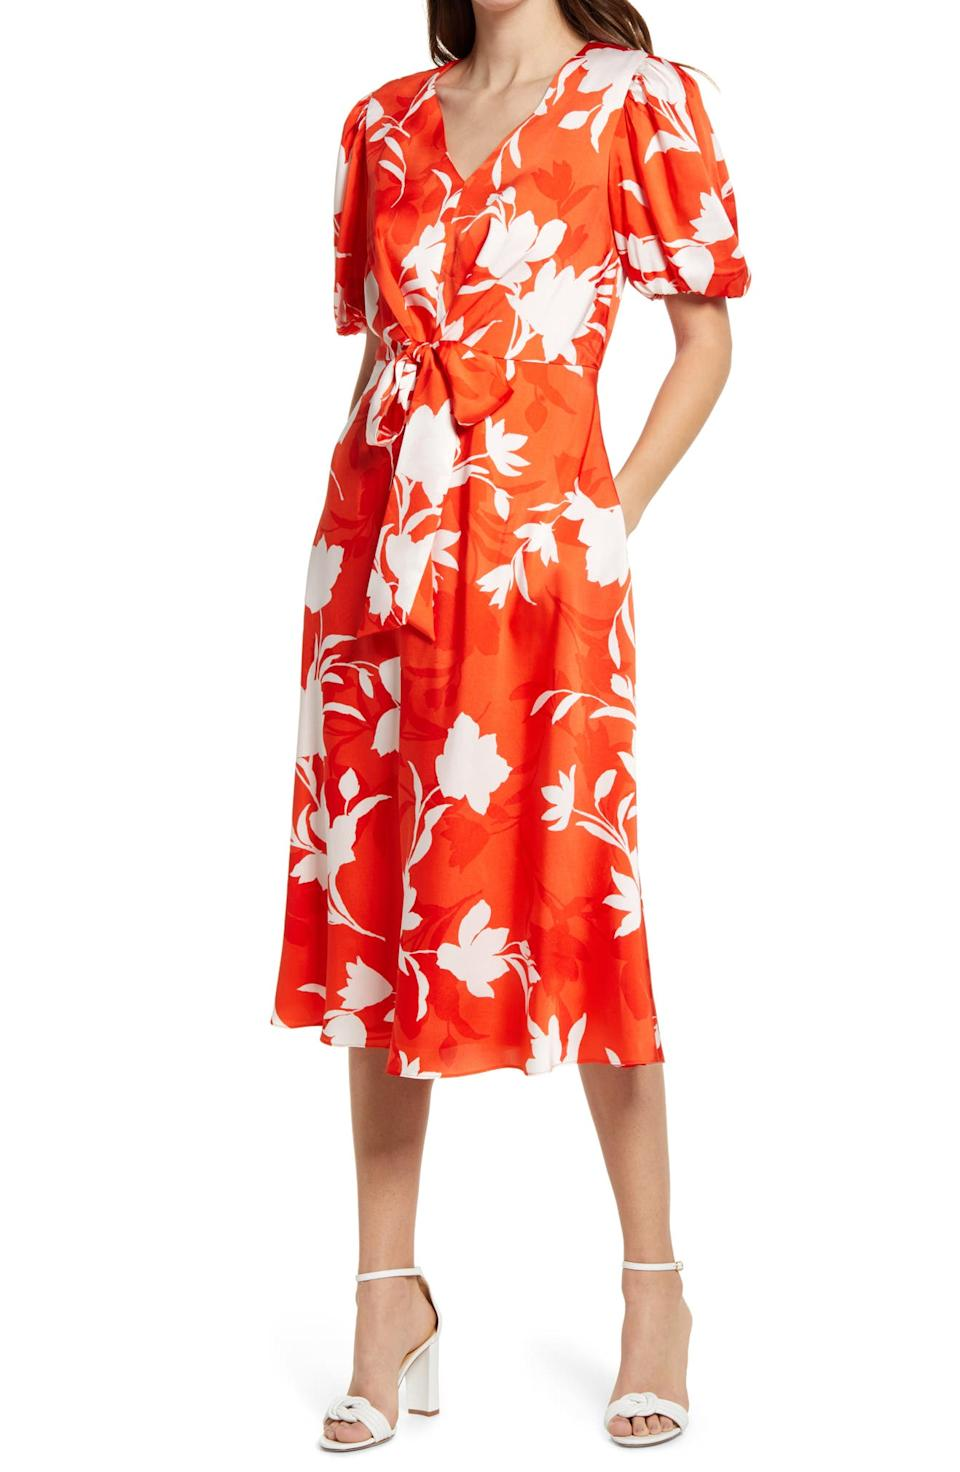 Julia Jordan Floral Balloon Sleeve Midi Dress. Image via Nordstrom.